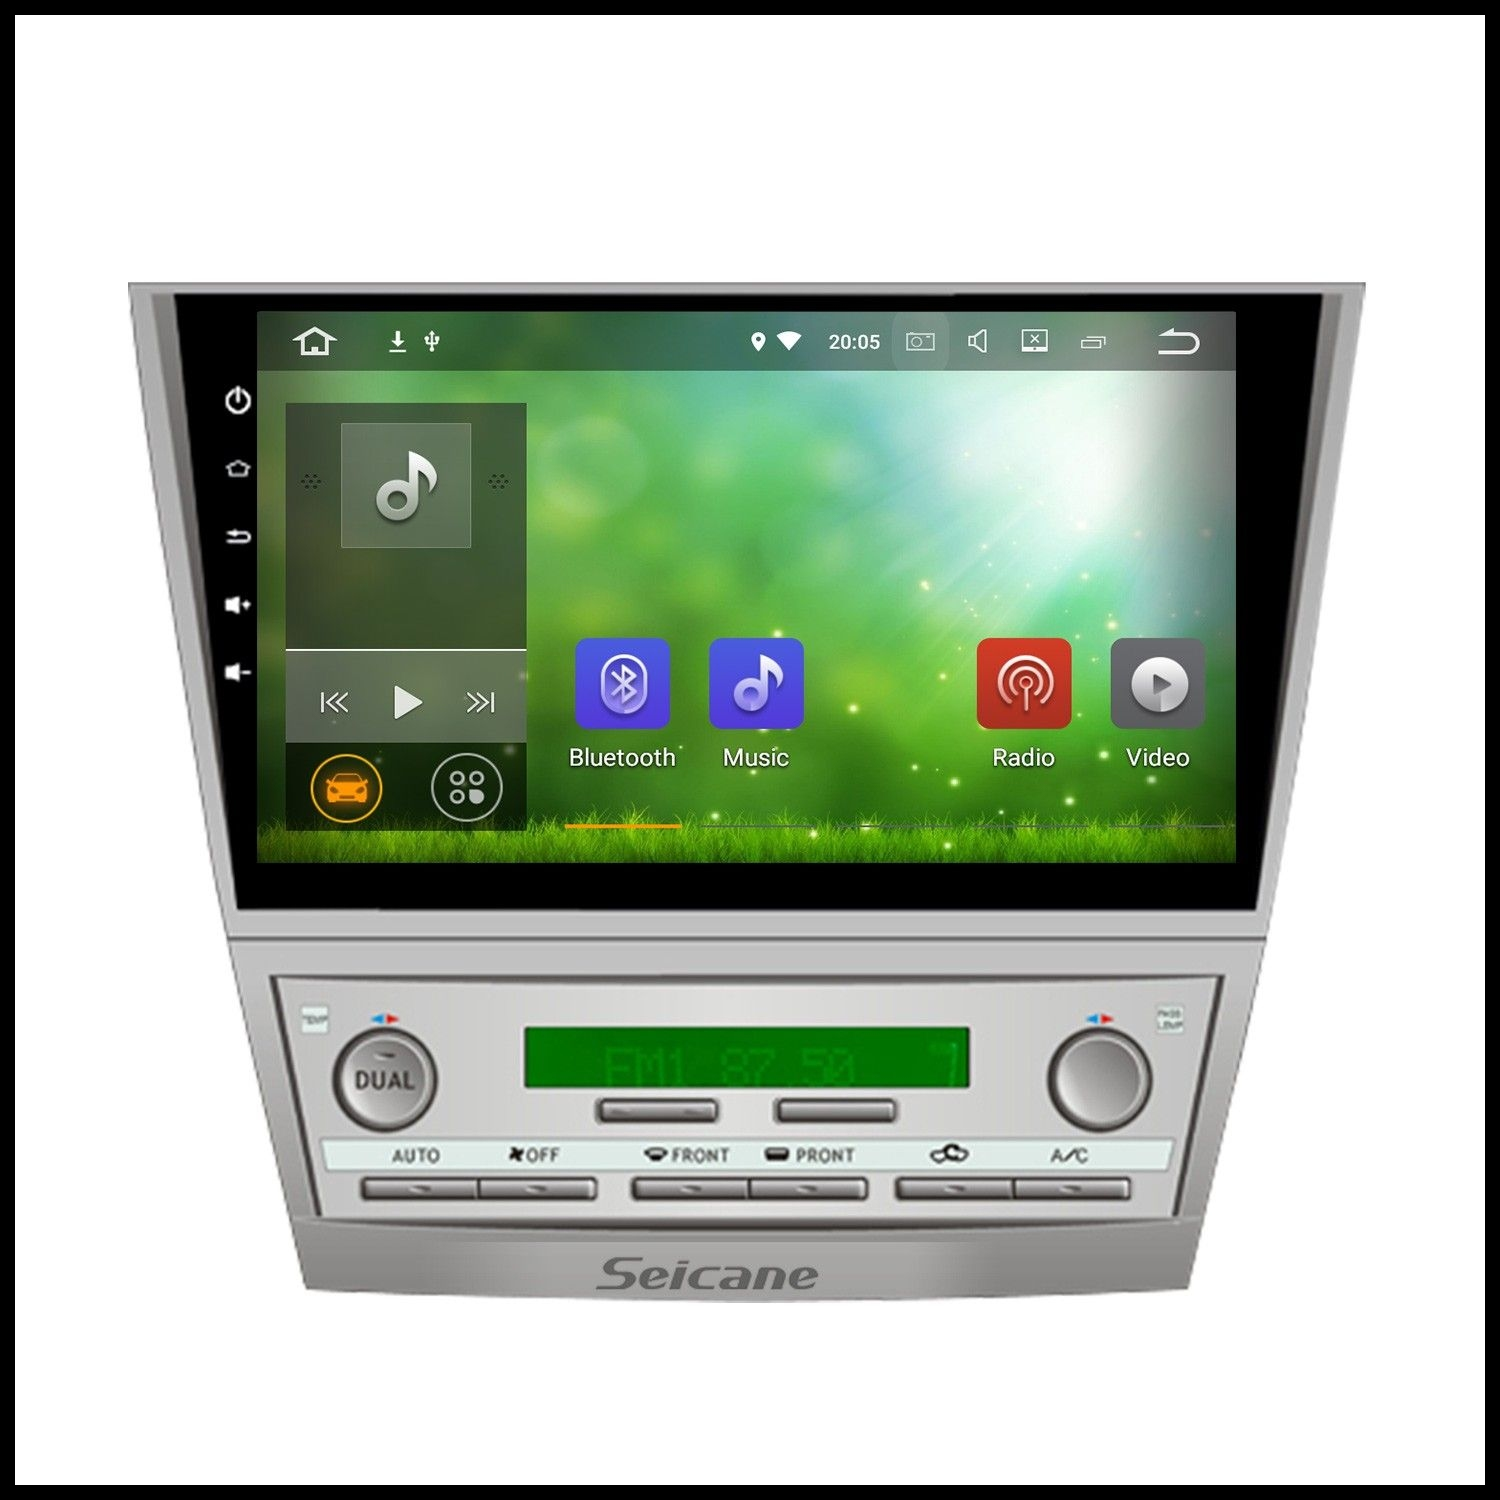 Seicane 10 2 inch 2007 2011 Toyota CAMRY Android 7 1 1024 600 Touchscreen Radio GPS Navigation Car stereo with Rearview Camera 4G WiFi Bluetooth Mirror Link